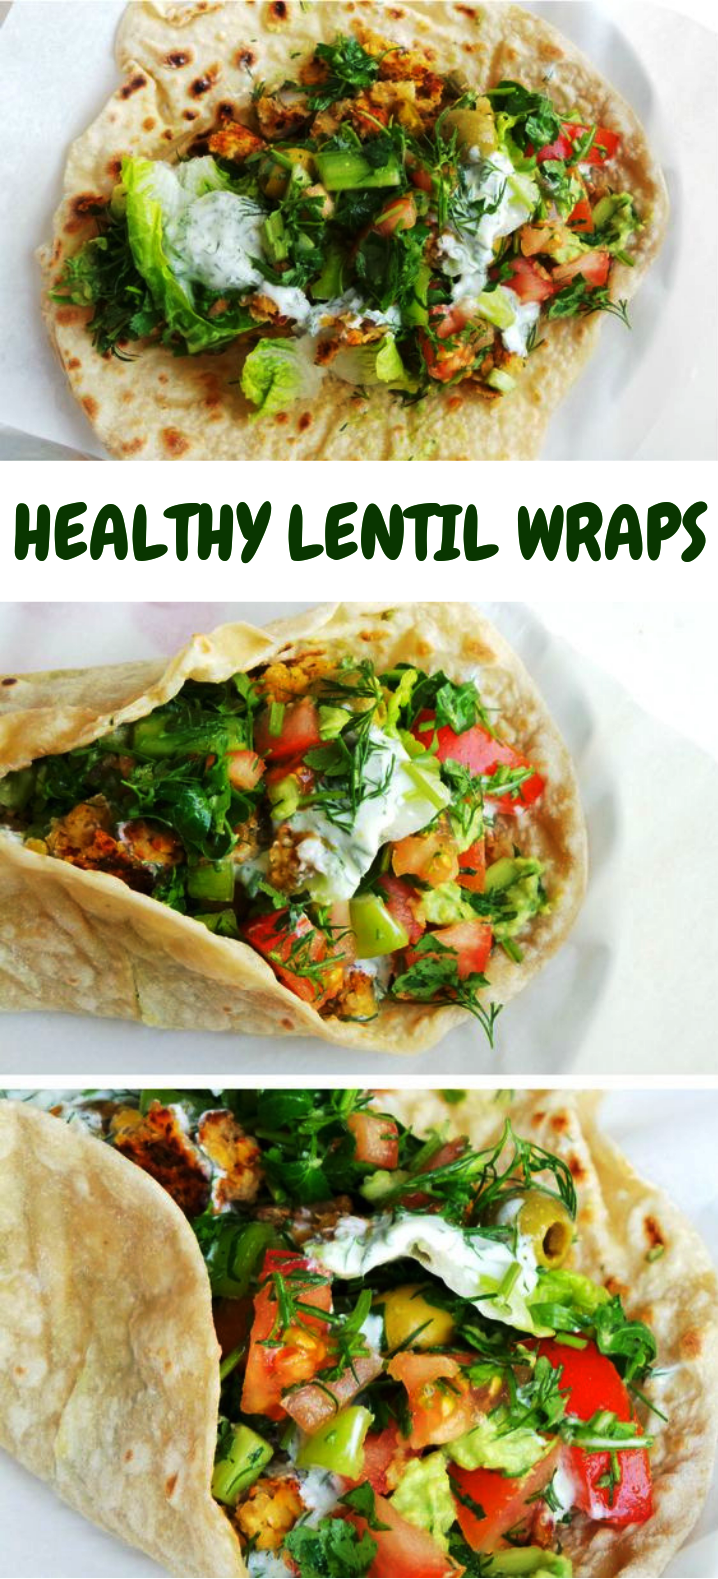 EVOLVED LENTIL WRAPS #Lentil #Vegetarian